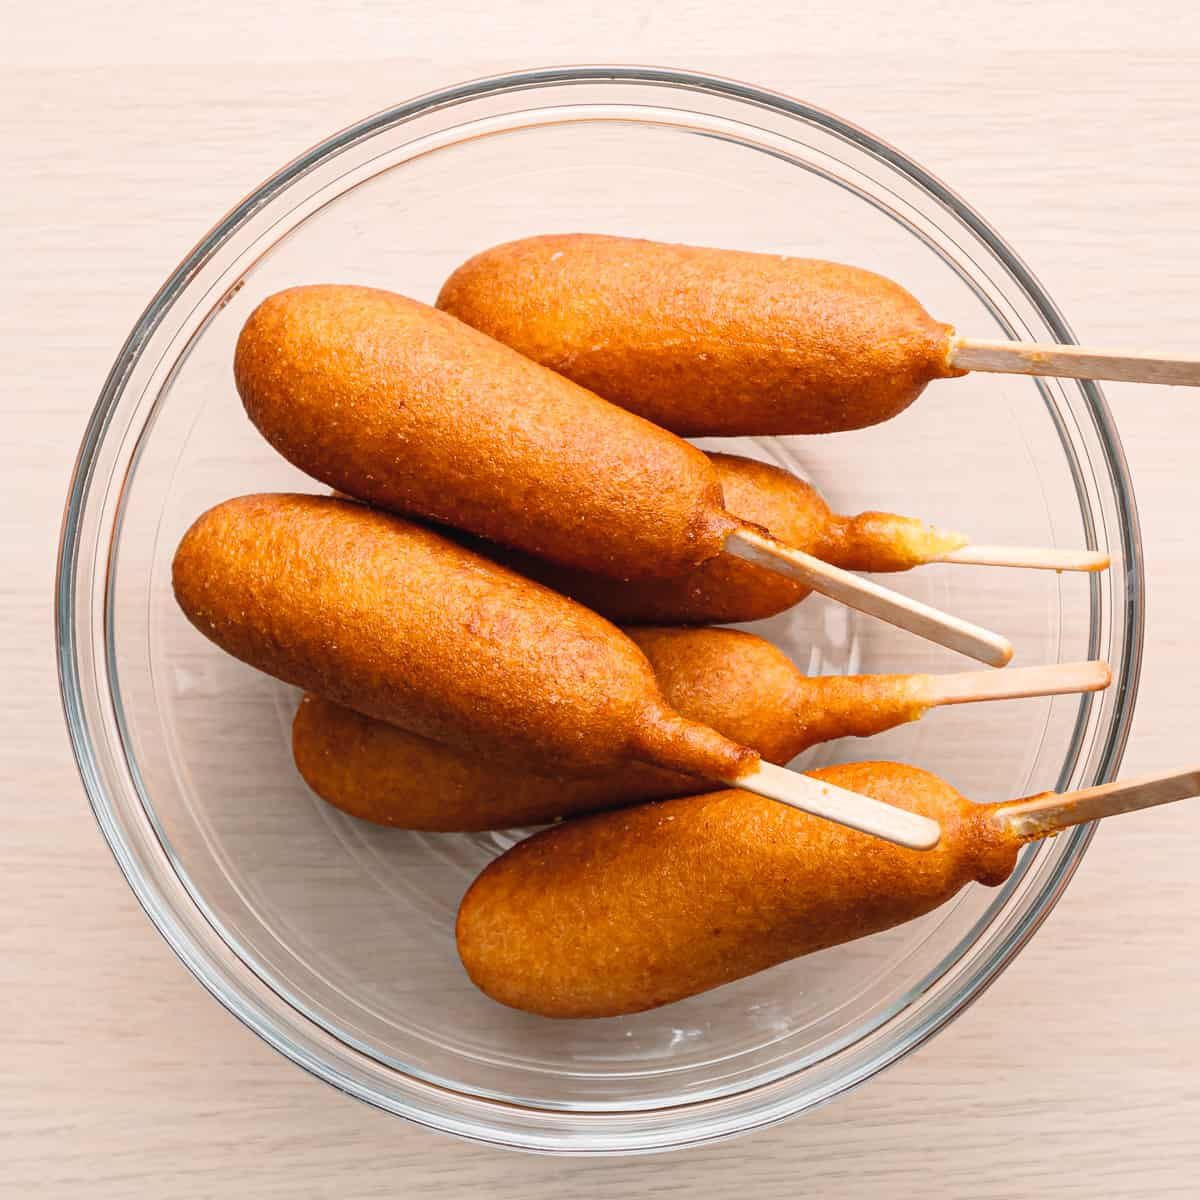 sausage on a stick is coated with a thick layer of cornmeal batter that is deep-fried.